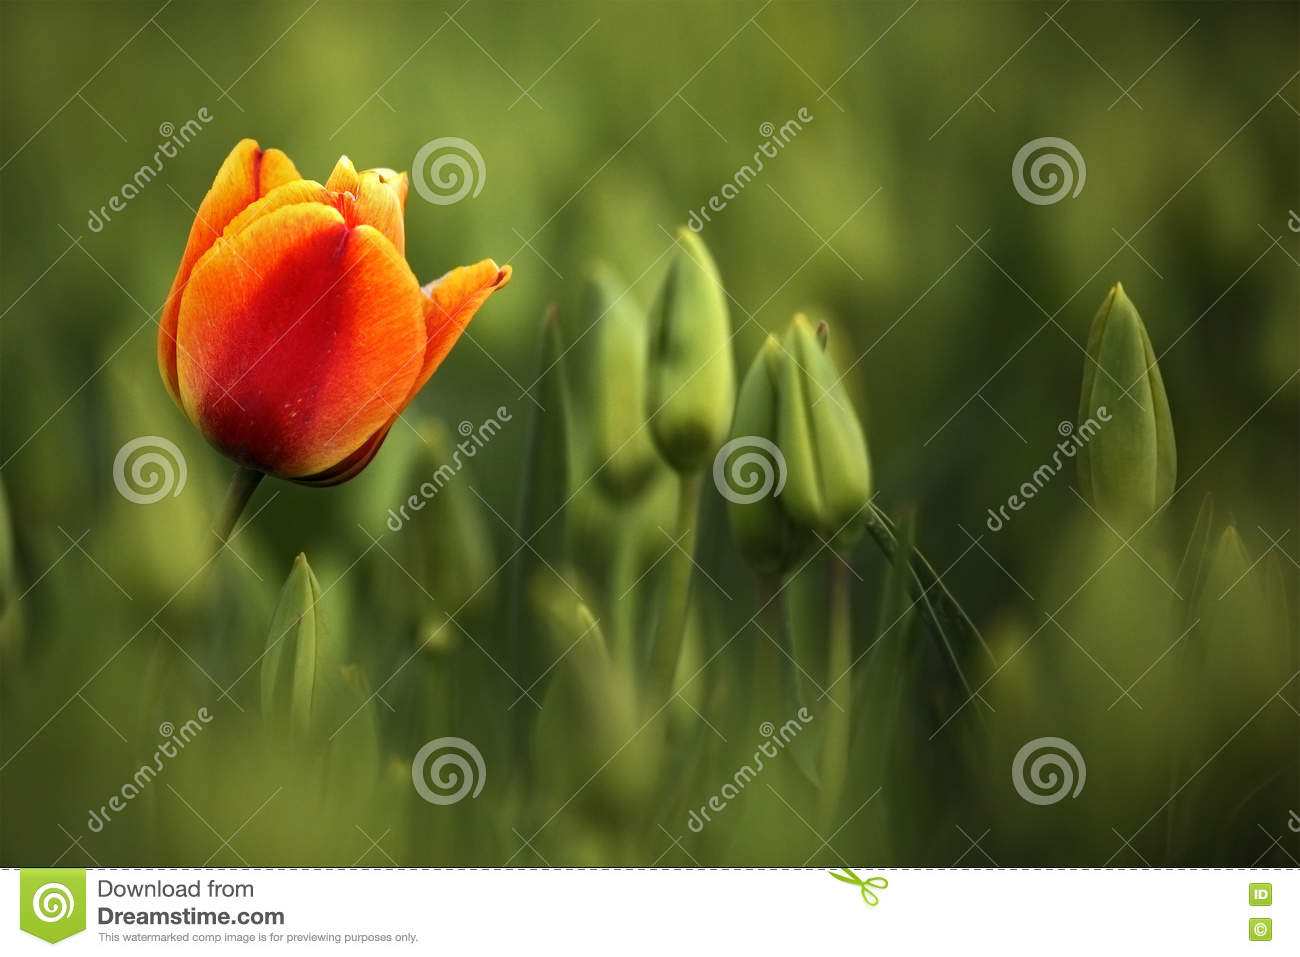 Red and orange tulip bloom, red beautiful tulips field in spring time with sunlight, floral background, garden scene, Holland, Net